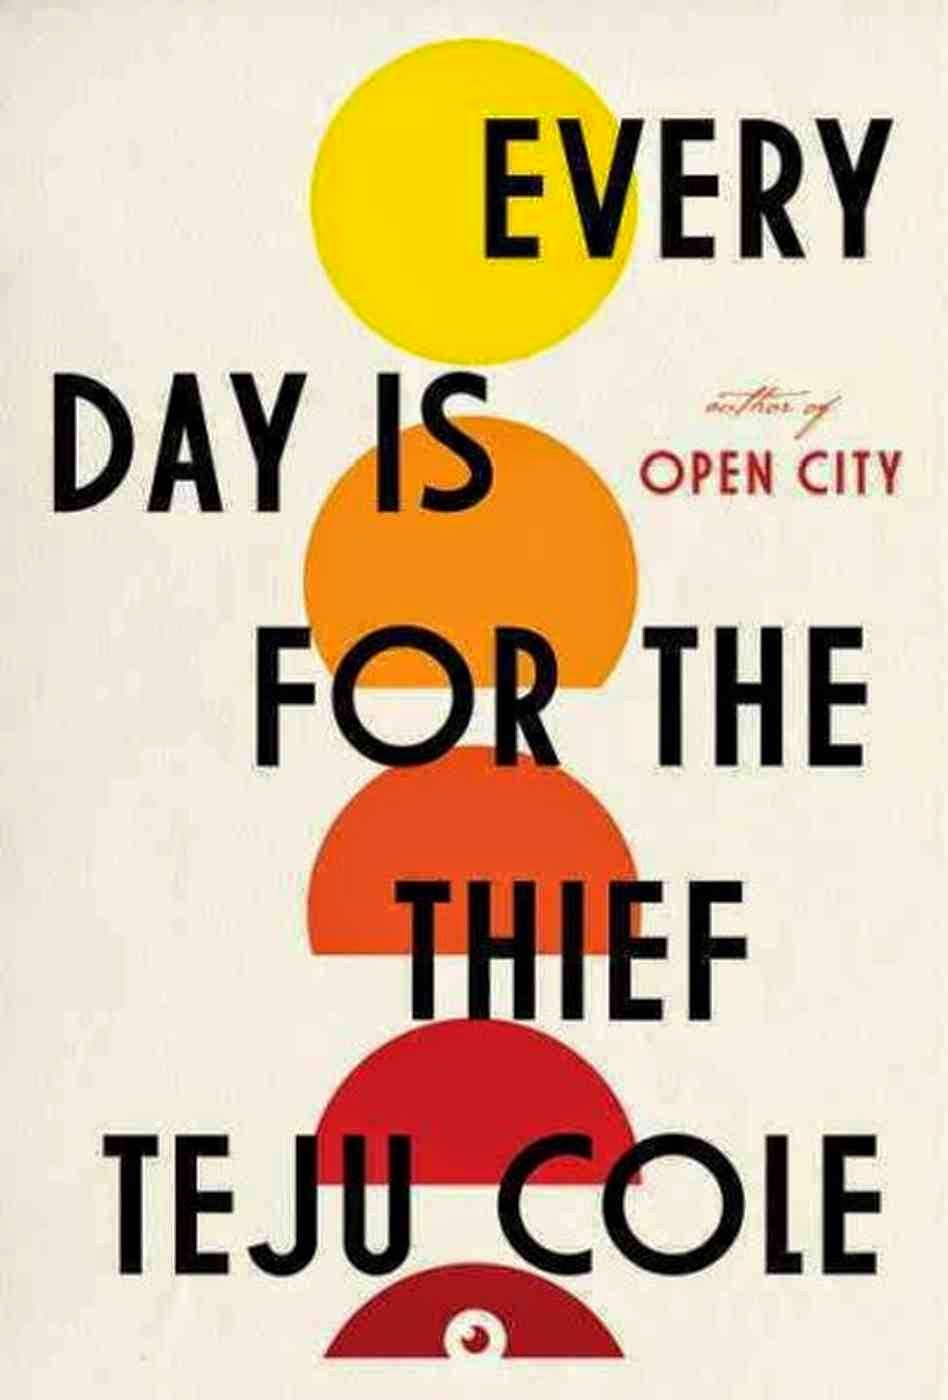 http://goodbooksandacupoftea.blogspot.ca/2014/05/every-day-is-for-thief-by-teju-cole.html